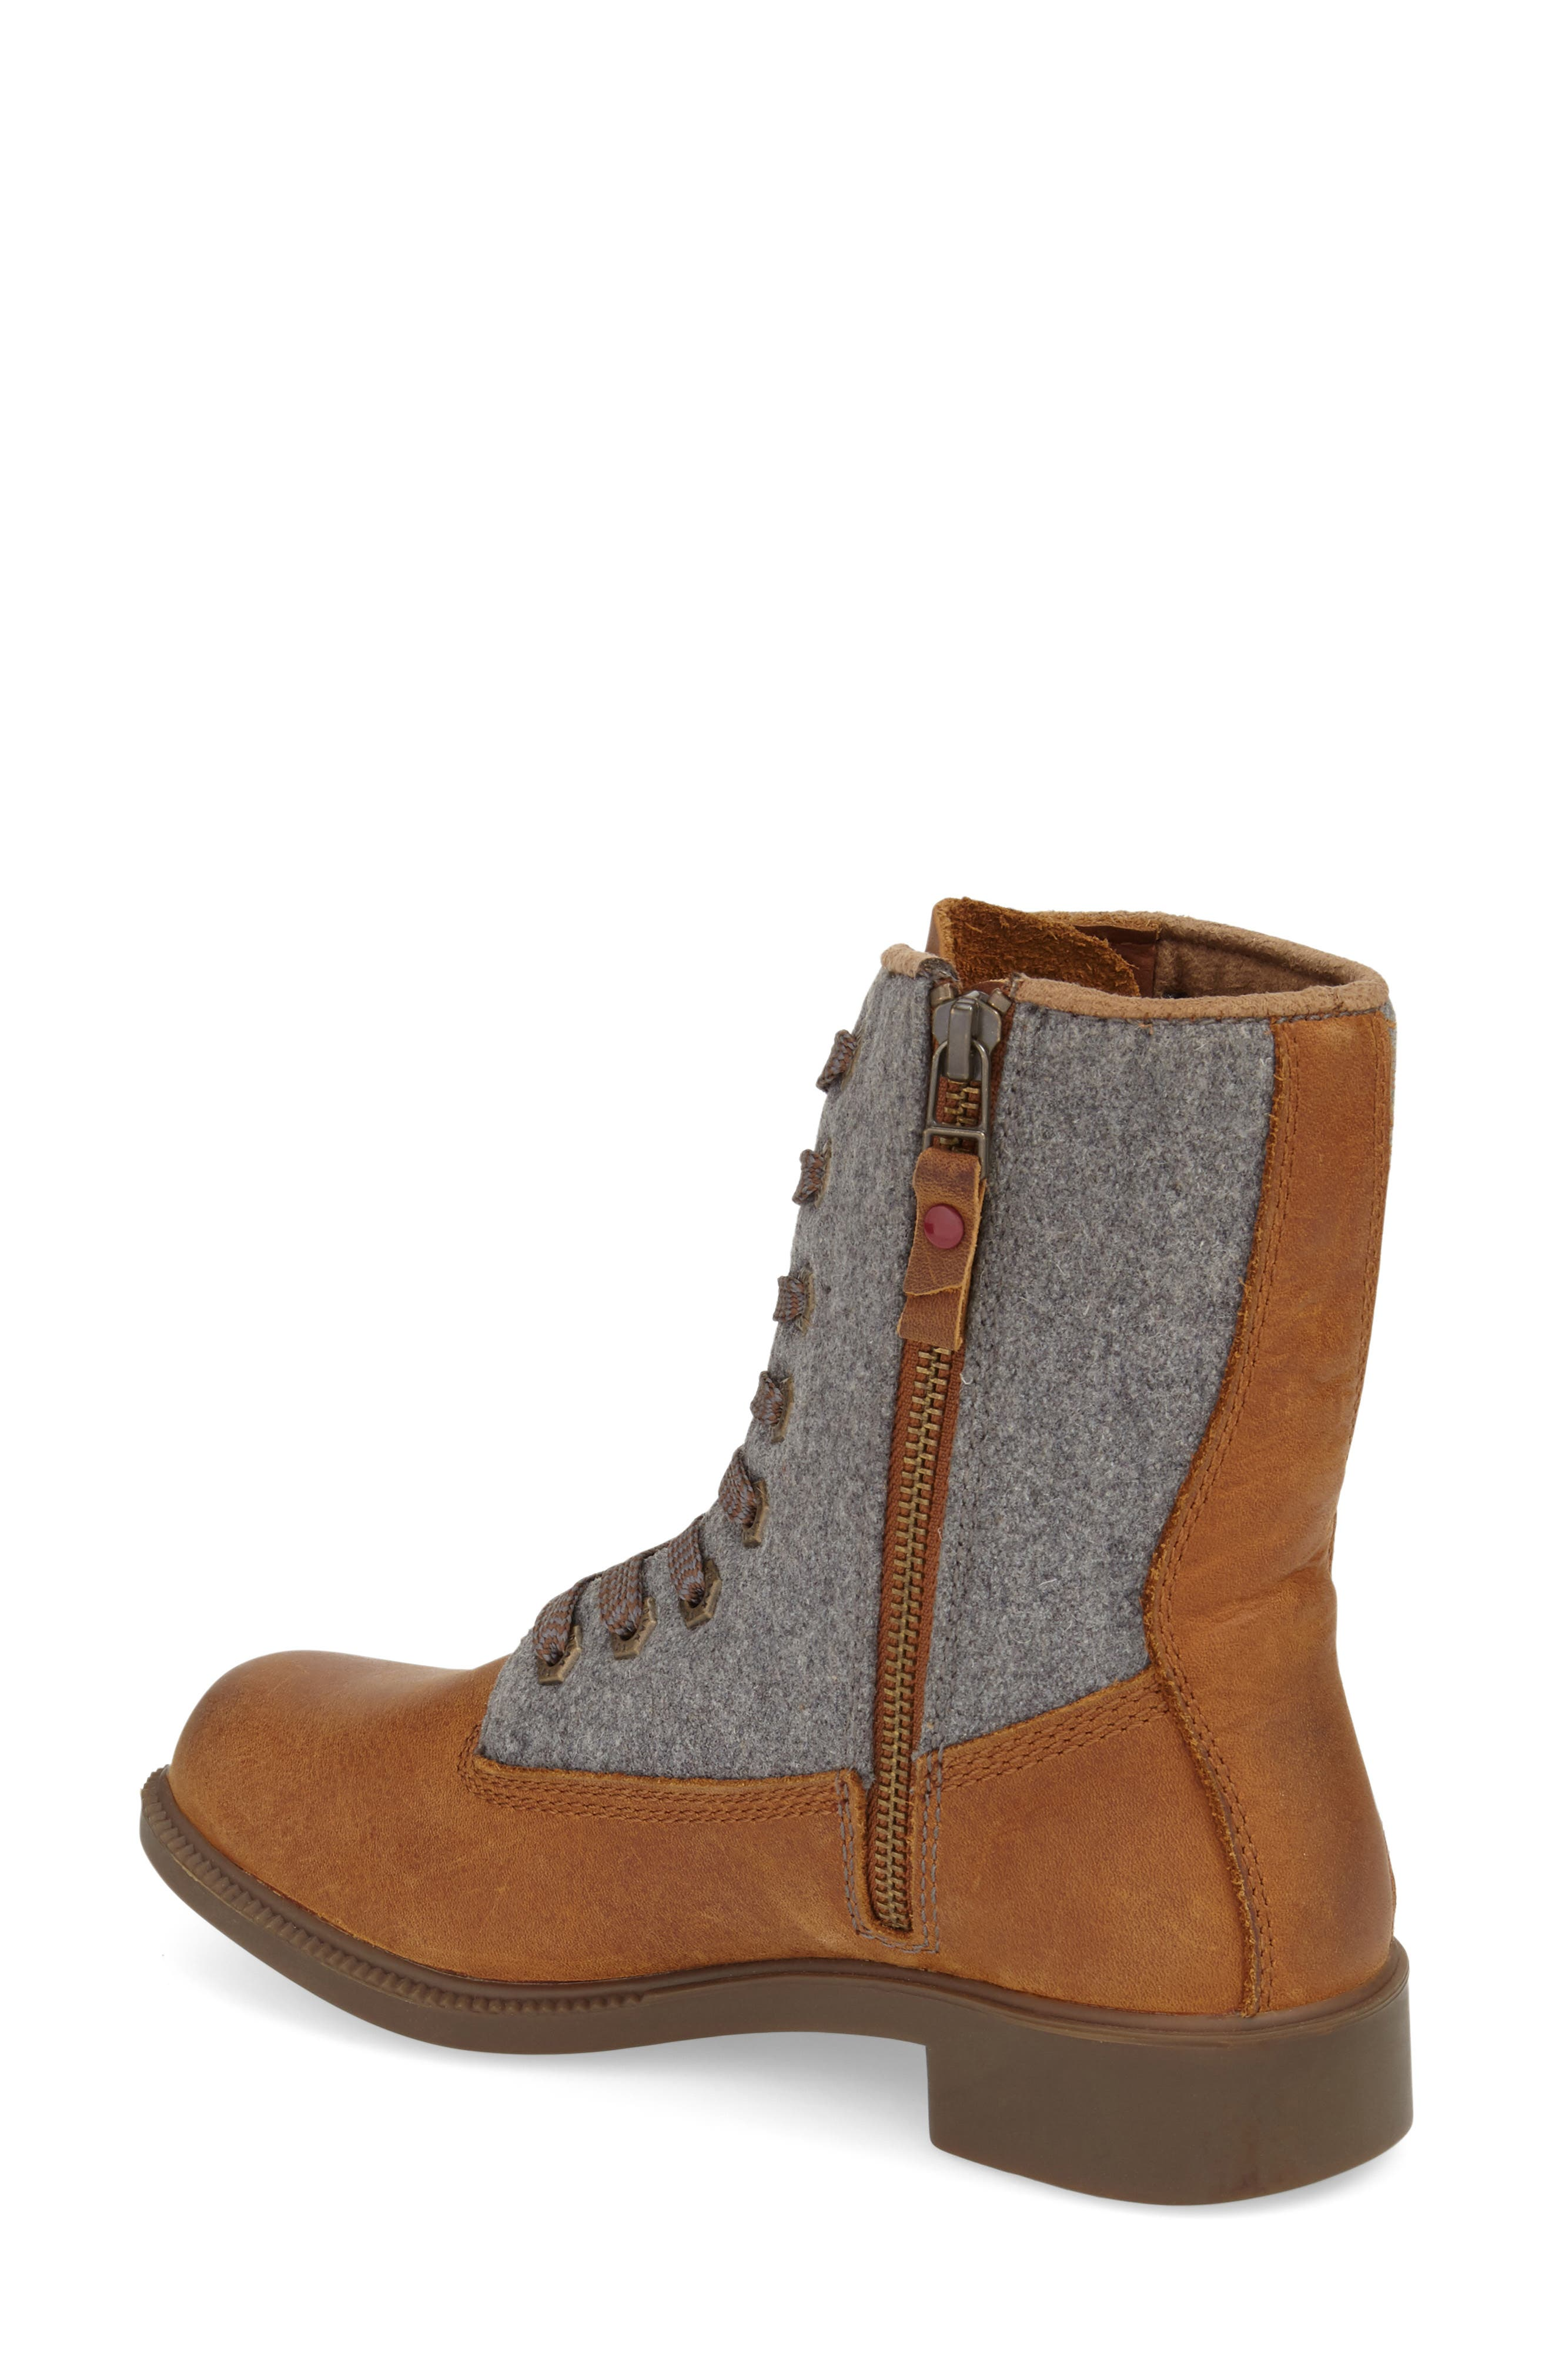 'Addison' Waterproof Insulated Zip Boot,                             Alternate thumbnail 2, color,                             Caramel/ Grey Leather